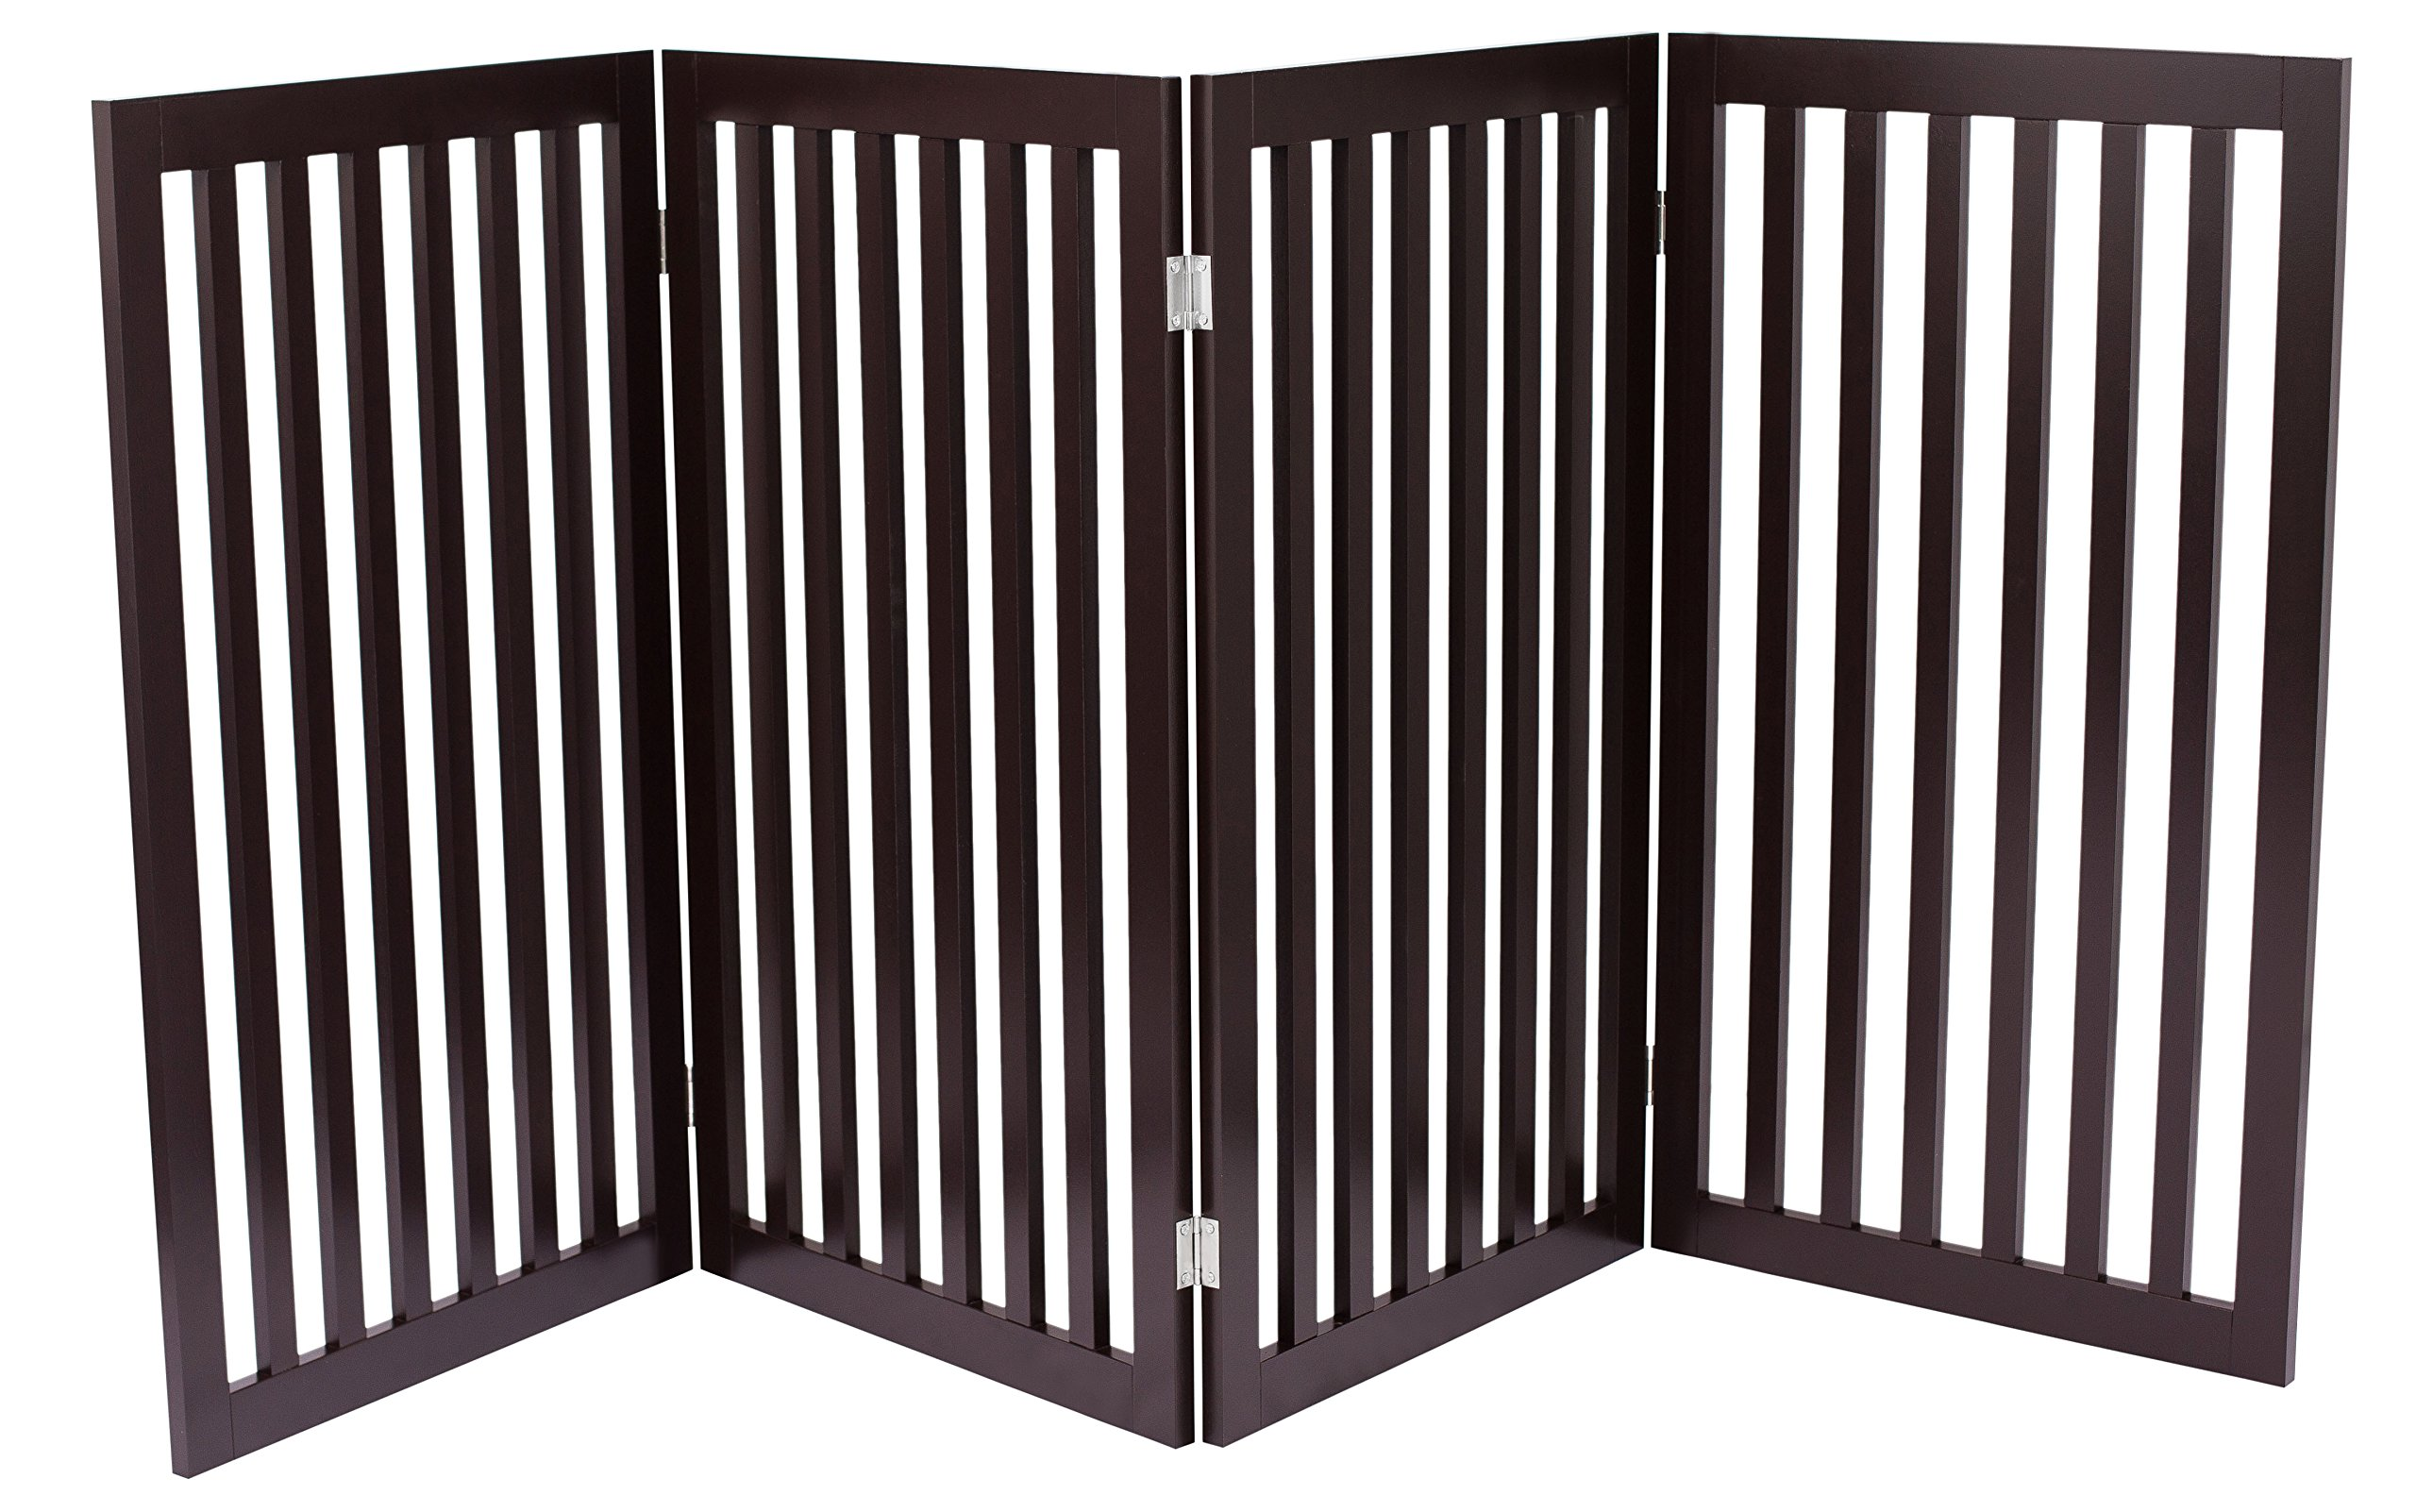 Internet's Best Traditional Pet Gate | 4 Panel | 36 Inch Tall Fence | Free Standing Folding Z Shape Indoor Doorway Hall Stairs Dog Puppy Gate | Fully Assembled | Espresso | Wooden